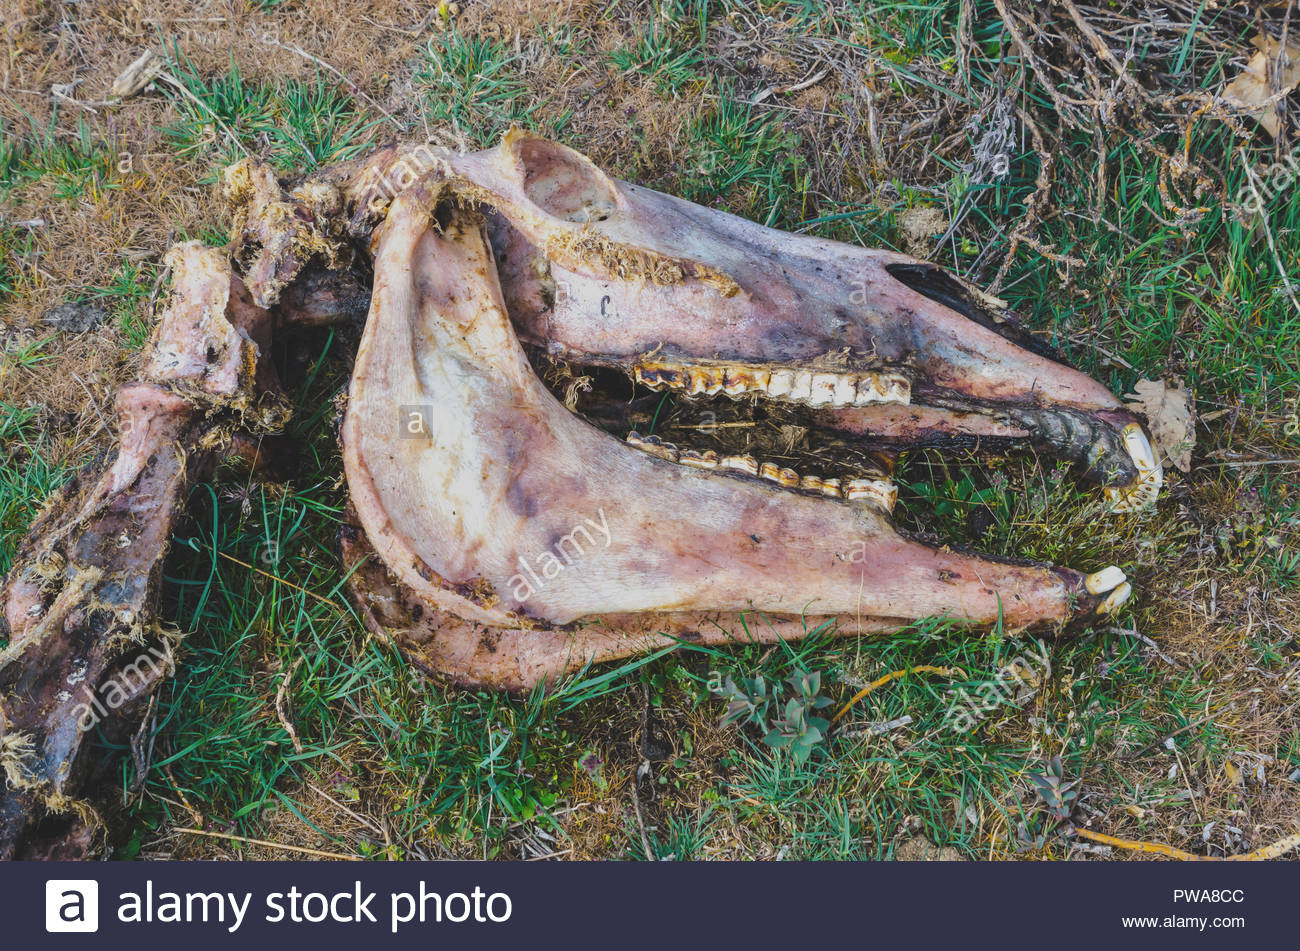 carrion, decayed flesh and bones of a dead animal. Horse cranium skinnedby scavengers - Stock Image